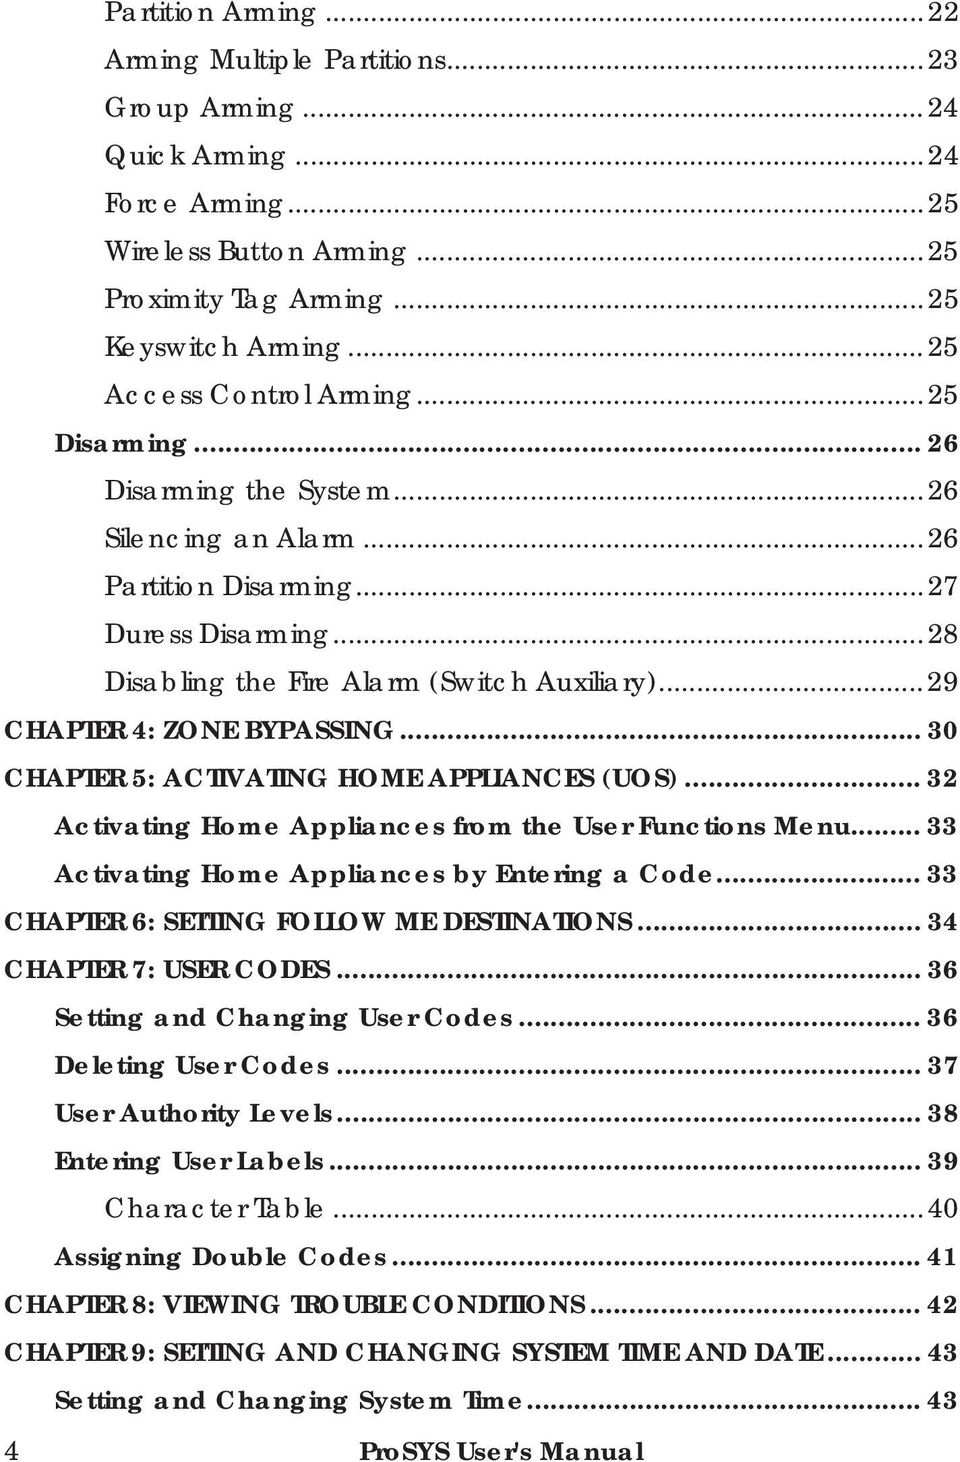 ..29 CHAPTER 4: ZONE BYPASSING... 30 CHAPTER 5: ACTIVATING HOME APPLIANCES (UOS)... 32 Activating Home Appliances from the User Functions Menu... 33 Activating Home Appliances by Entering a Code.